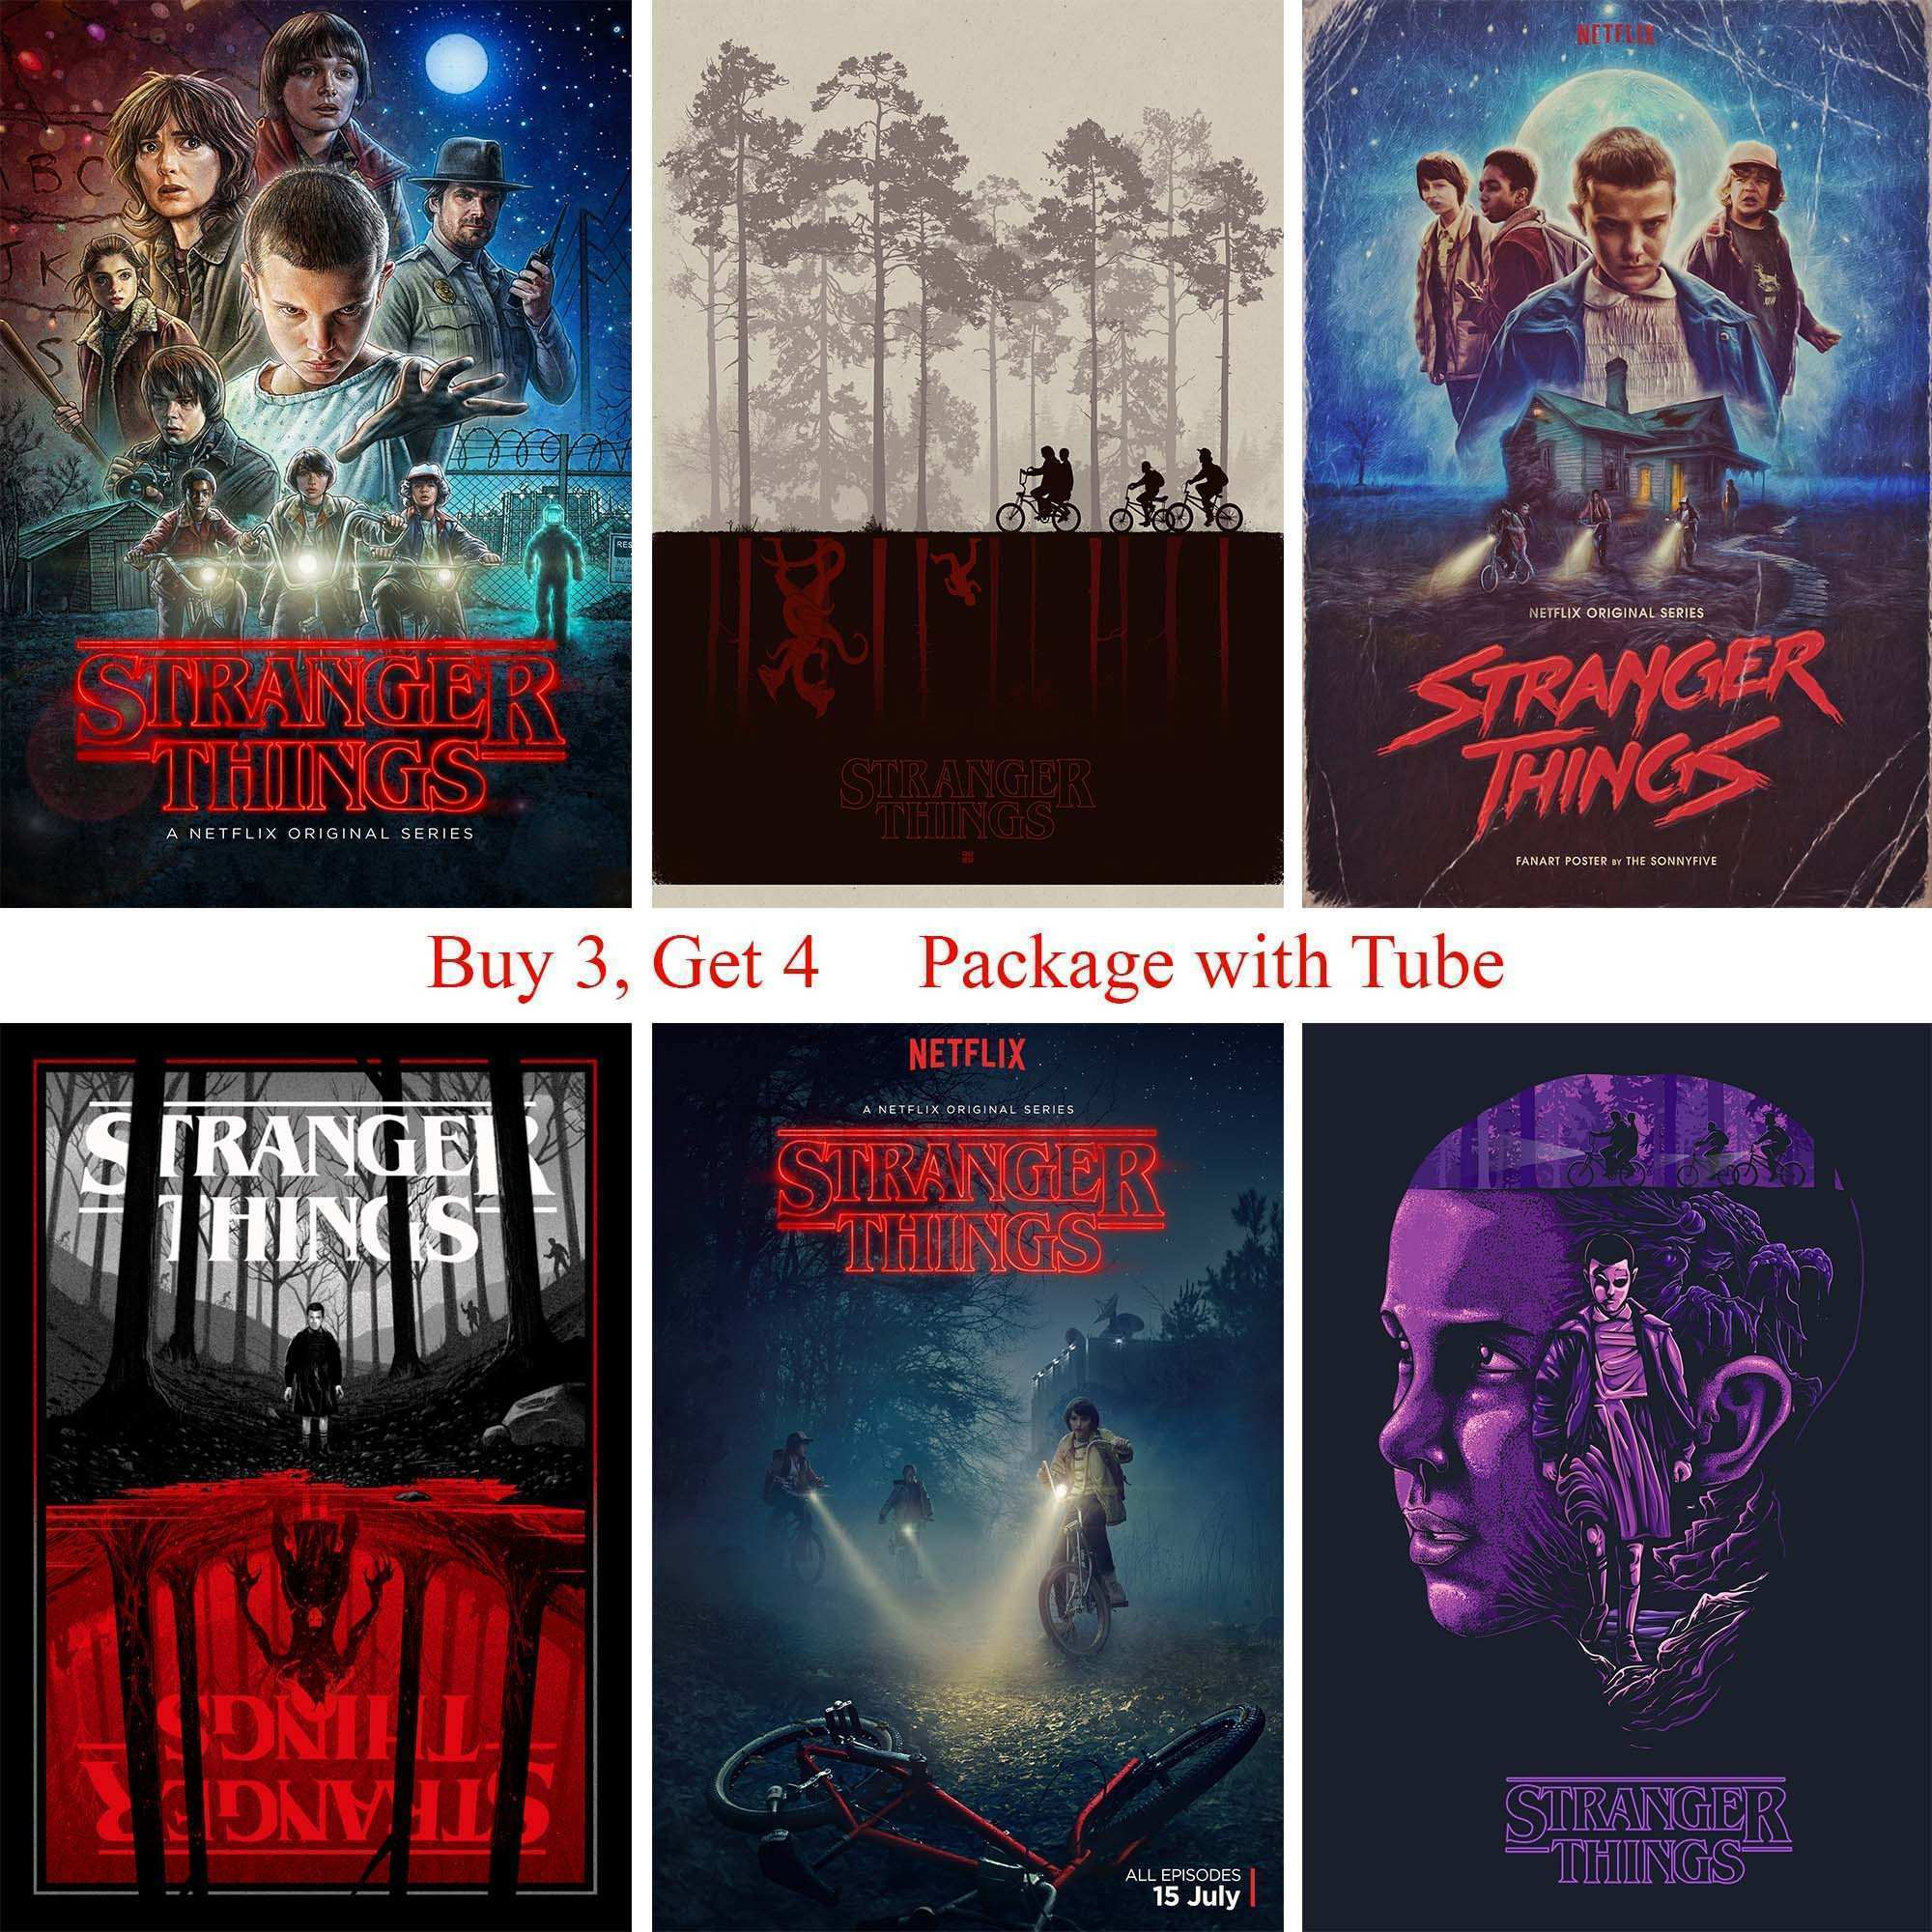 Stranger Things Posters Wall Stickers High Quality White Coated